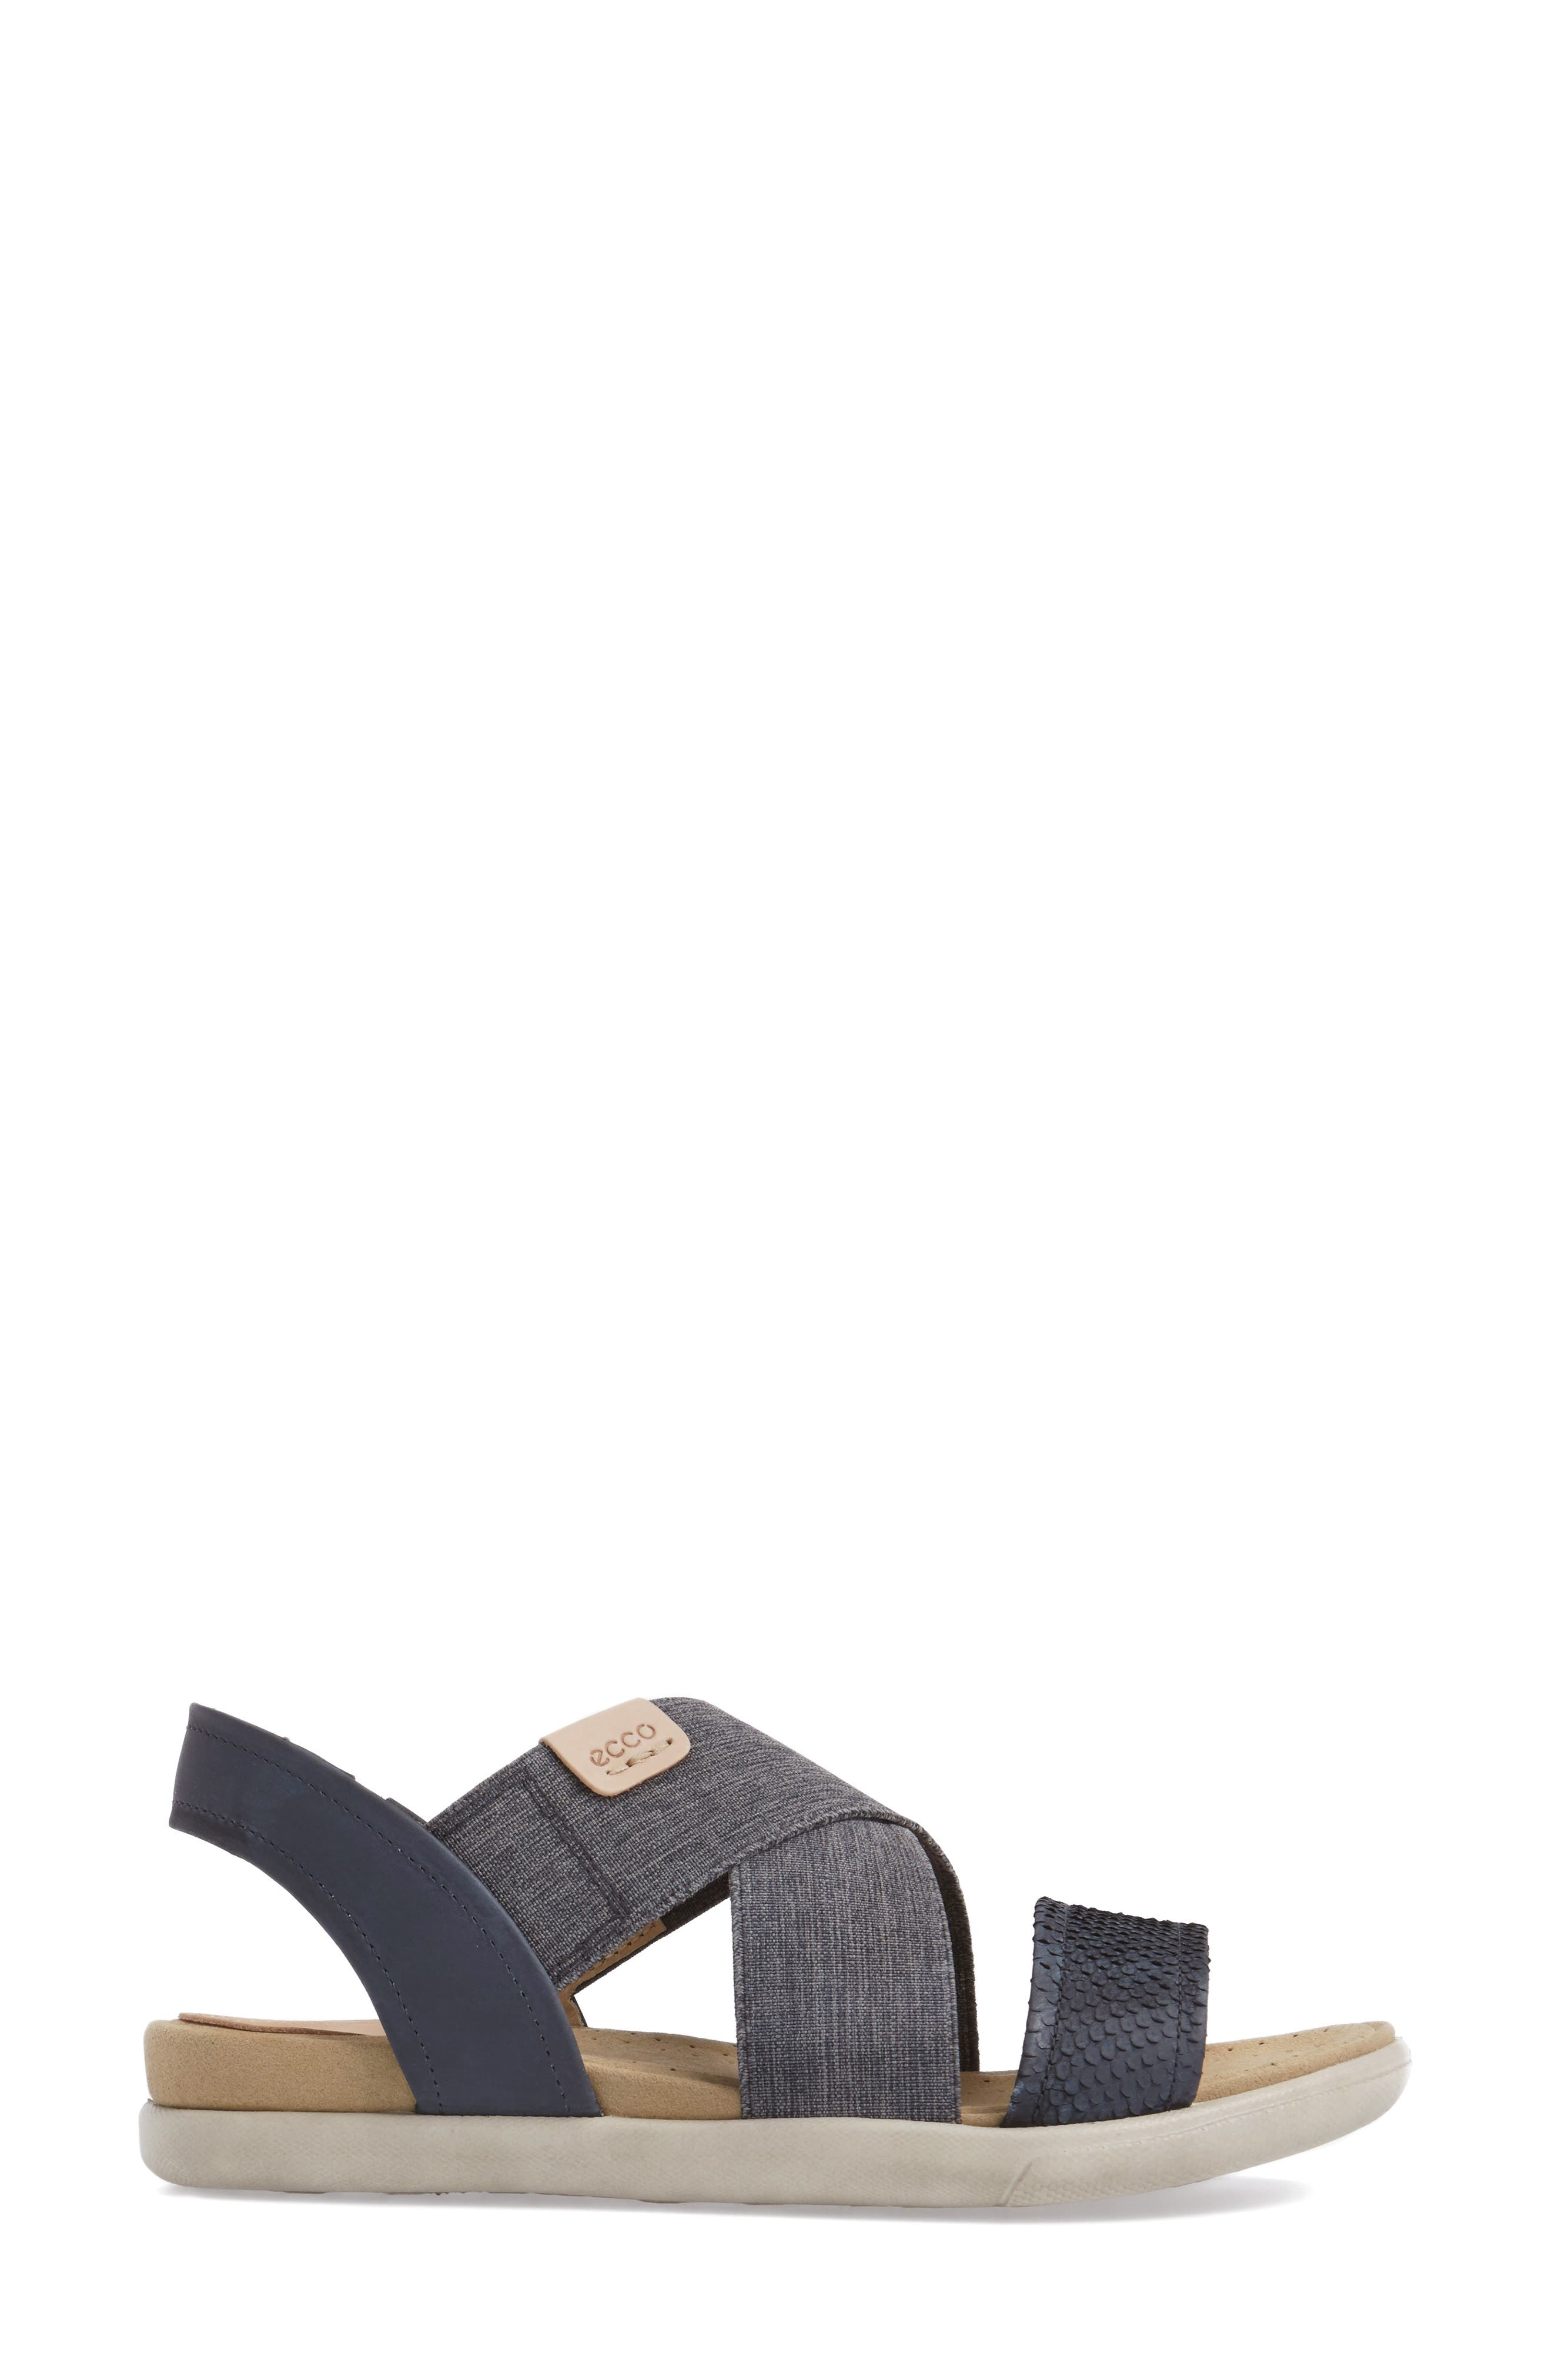 Damara Cross-Strap Sandal,                             Alternate thumbnail 19, color,